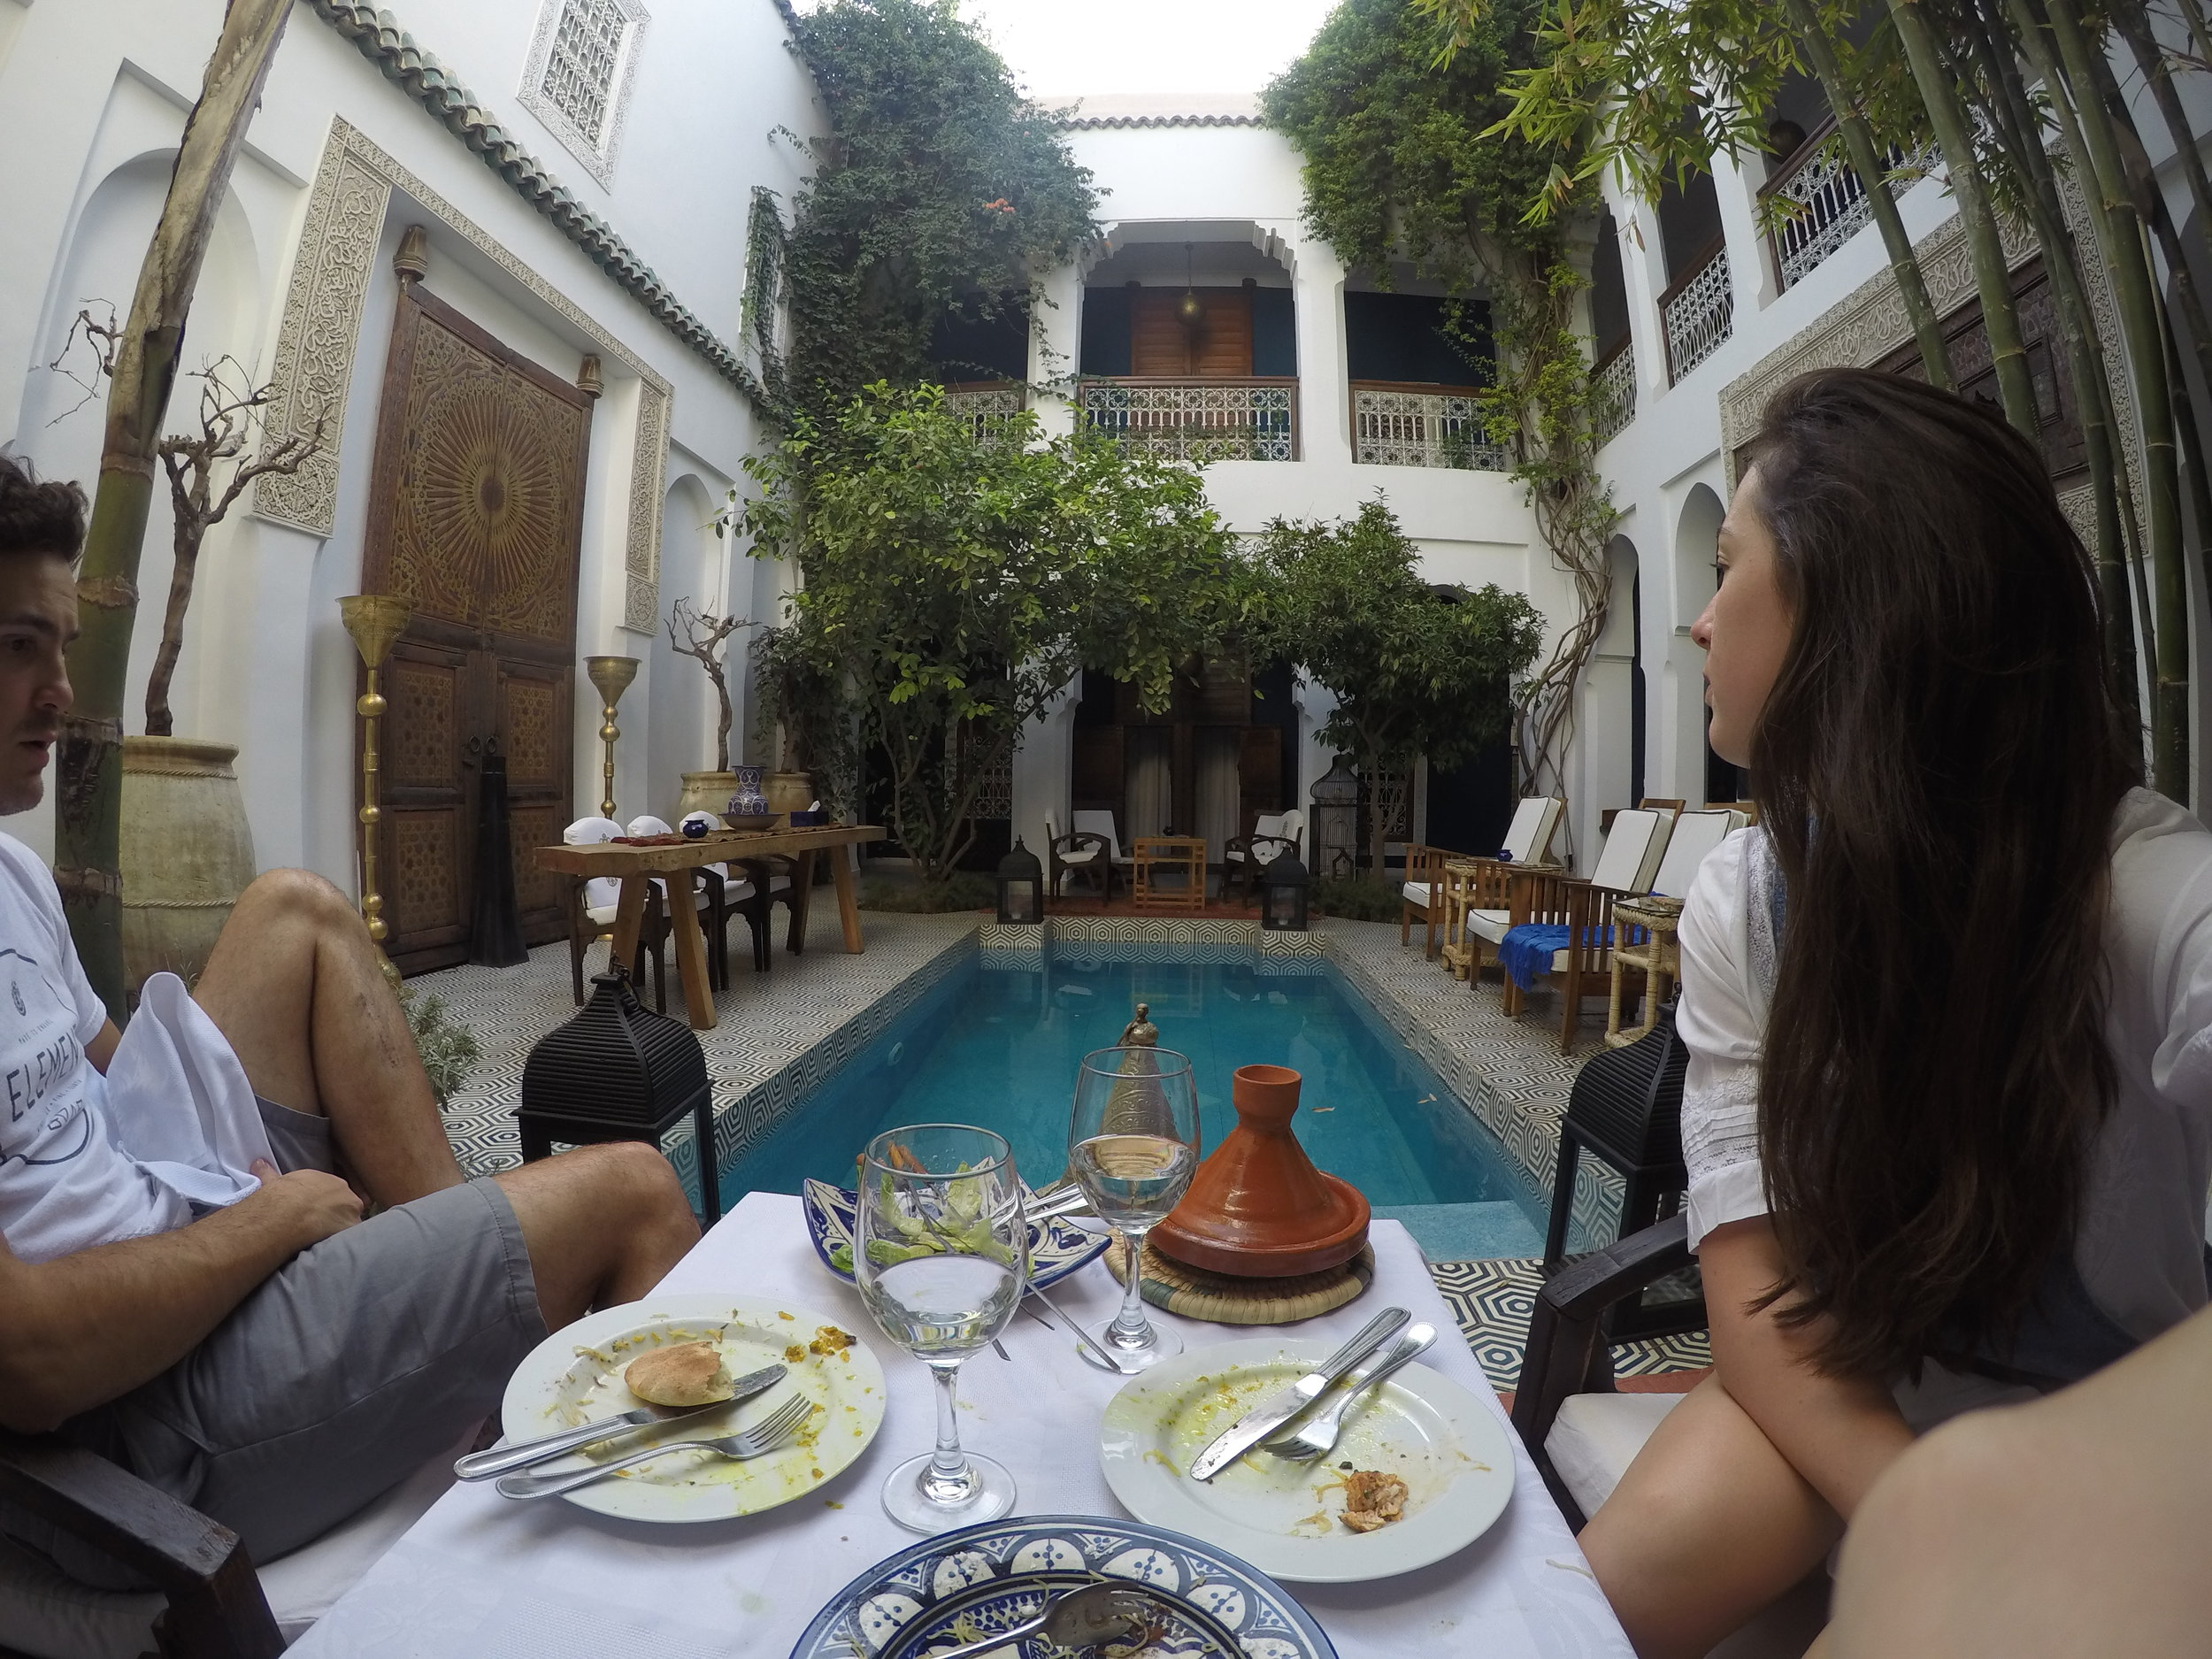 Lunch next to the pool in Riad Les Yeux Bleus